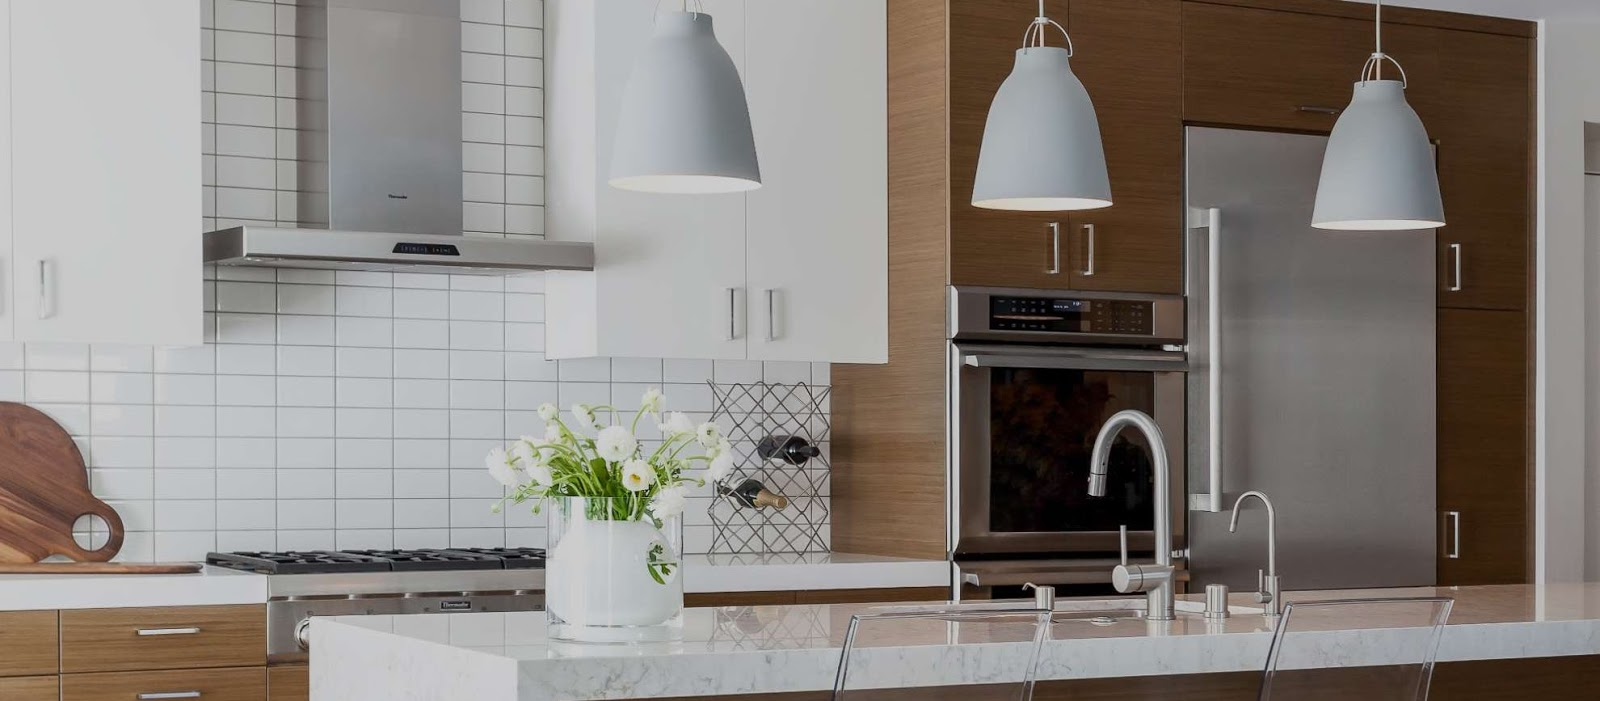 Sinks and Taps Installations | Welford | Heart Kitchens